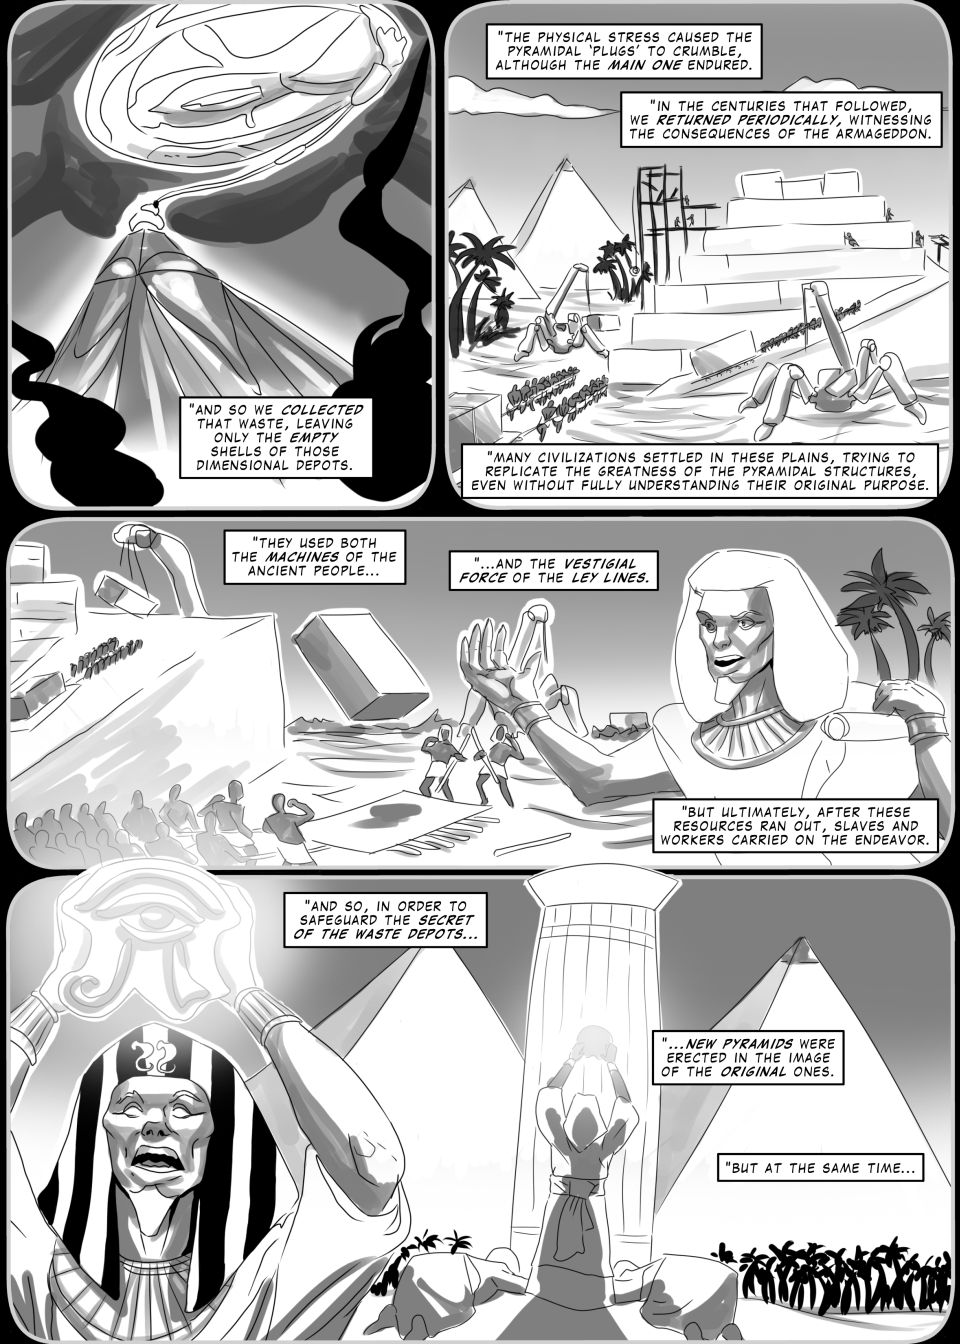 GAL 50 - The Pyramids' Other Secret 5 - p6